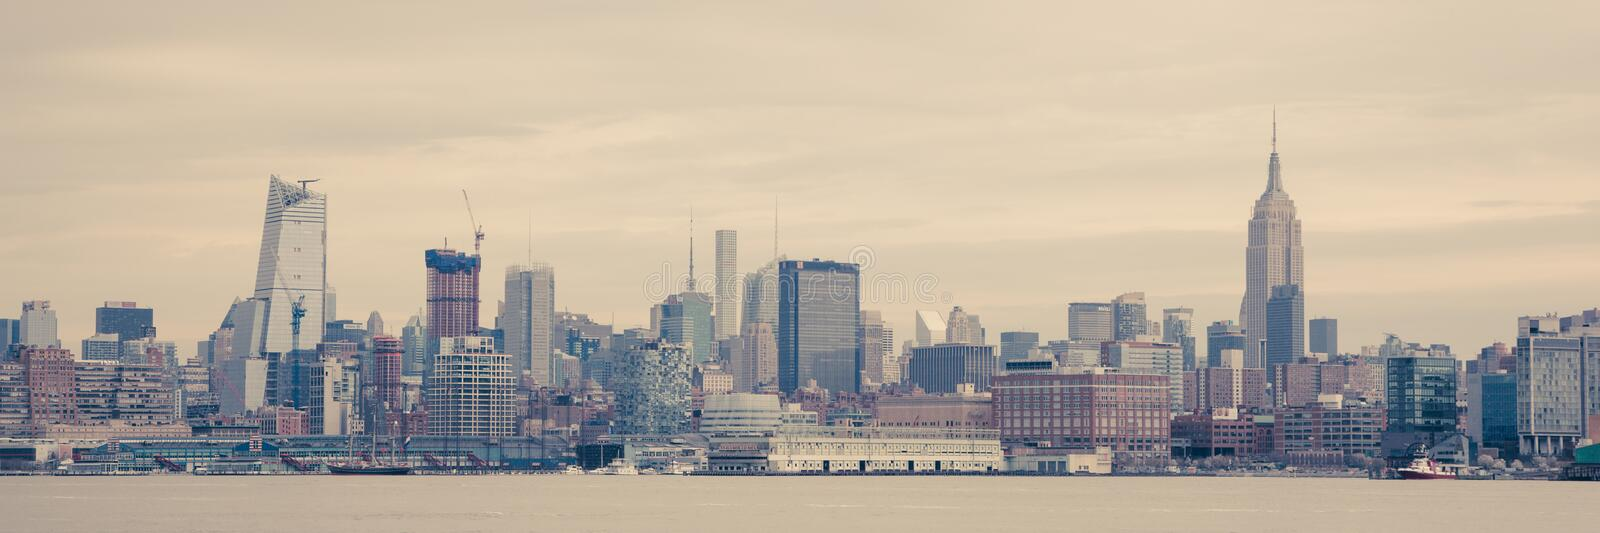 Manhattan Skyline from Hoboken. APRIL 11, 2016 - Hoboken, NJ: A view of the Midtown Manhattan Skyline seen from Hoboken on a dismal day stock images